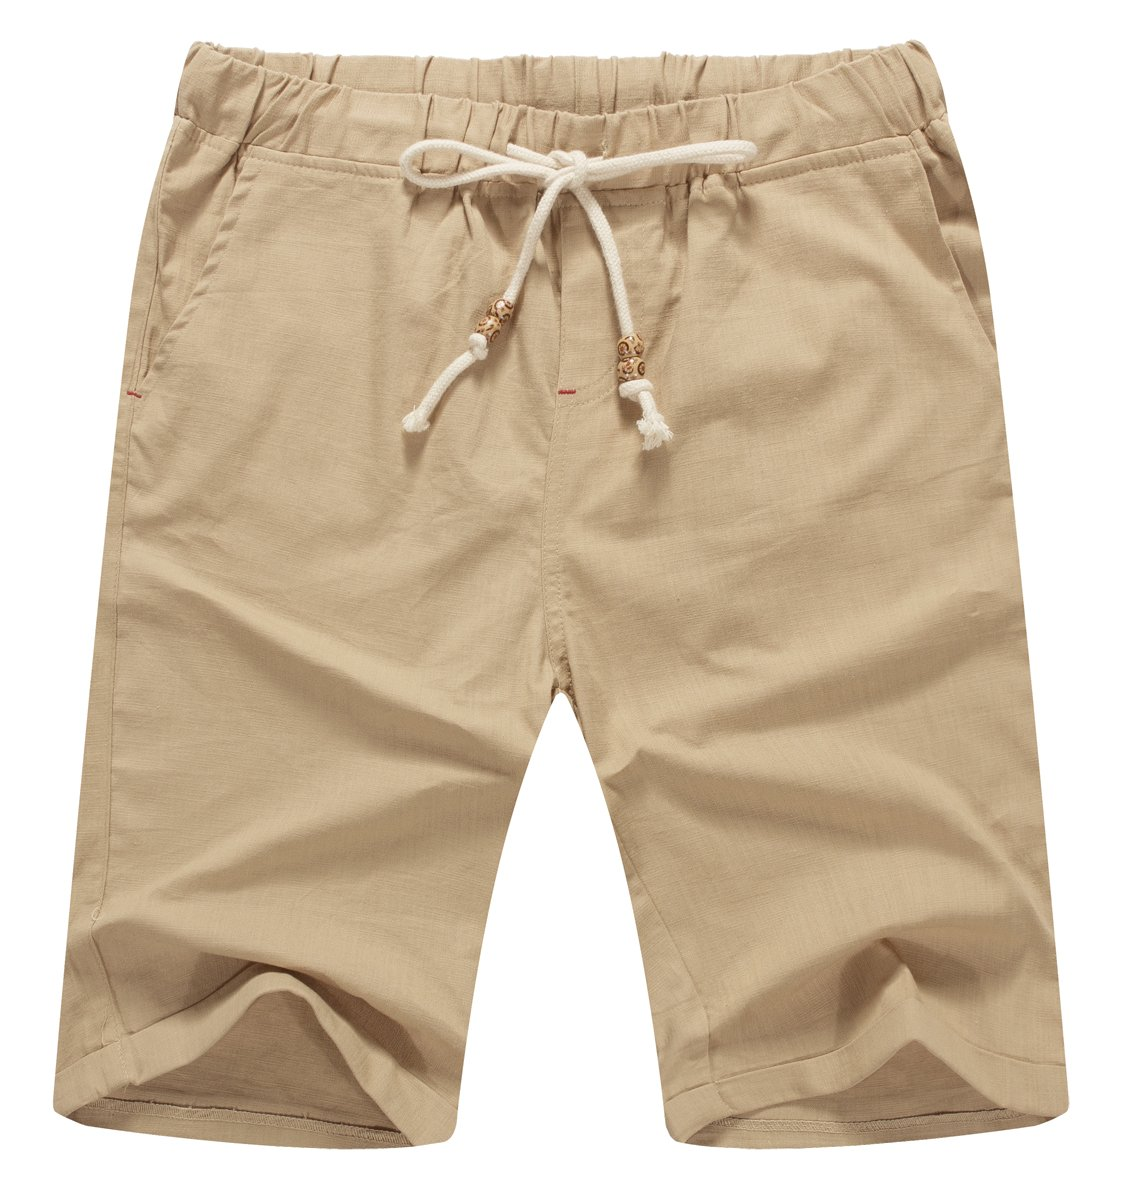 NITAGUT Summer Chino Shorts Regular Fit #S3641